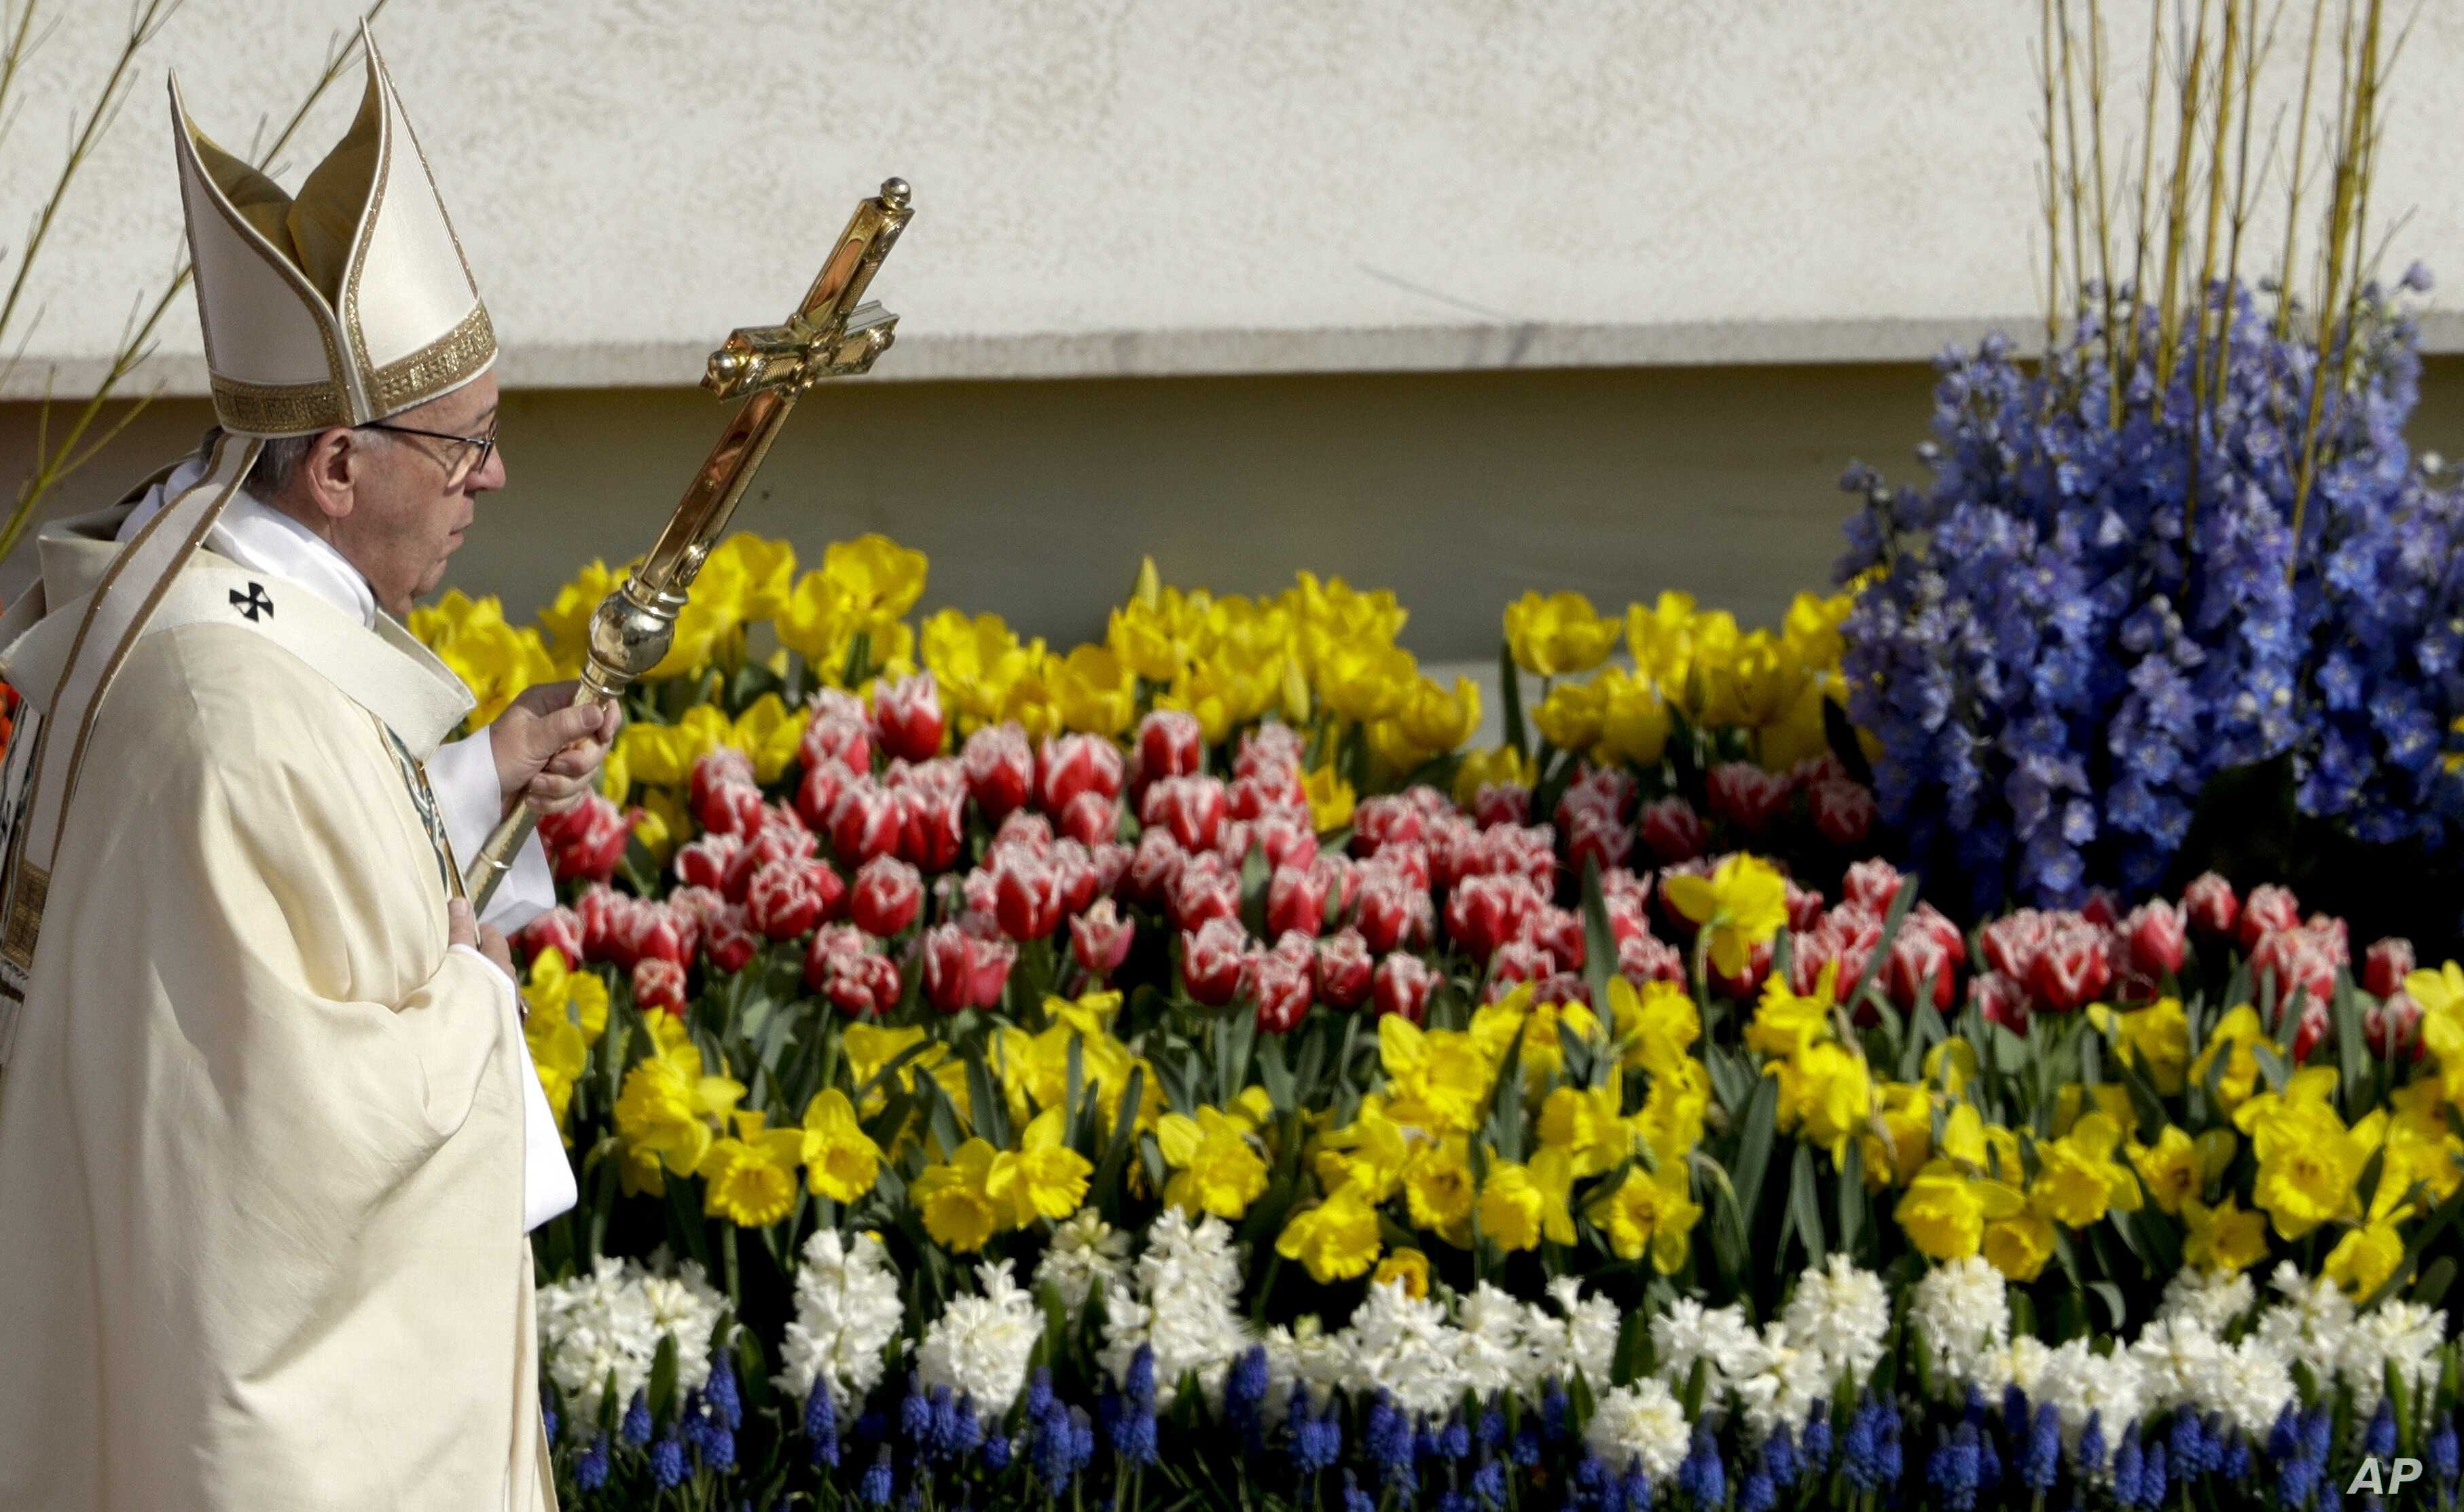 Pope Francis walks past flowers as he celebrates the Easter Mass, in St. Peter's Square, at the Vatican, April 16, 2017.